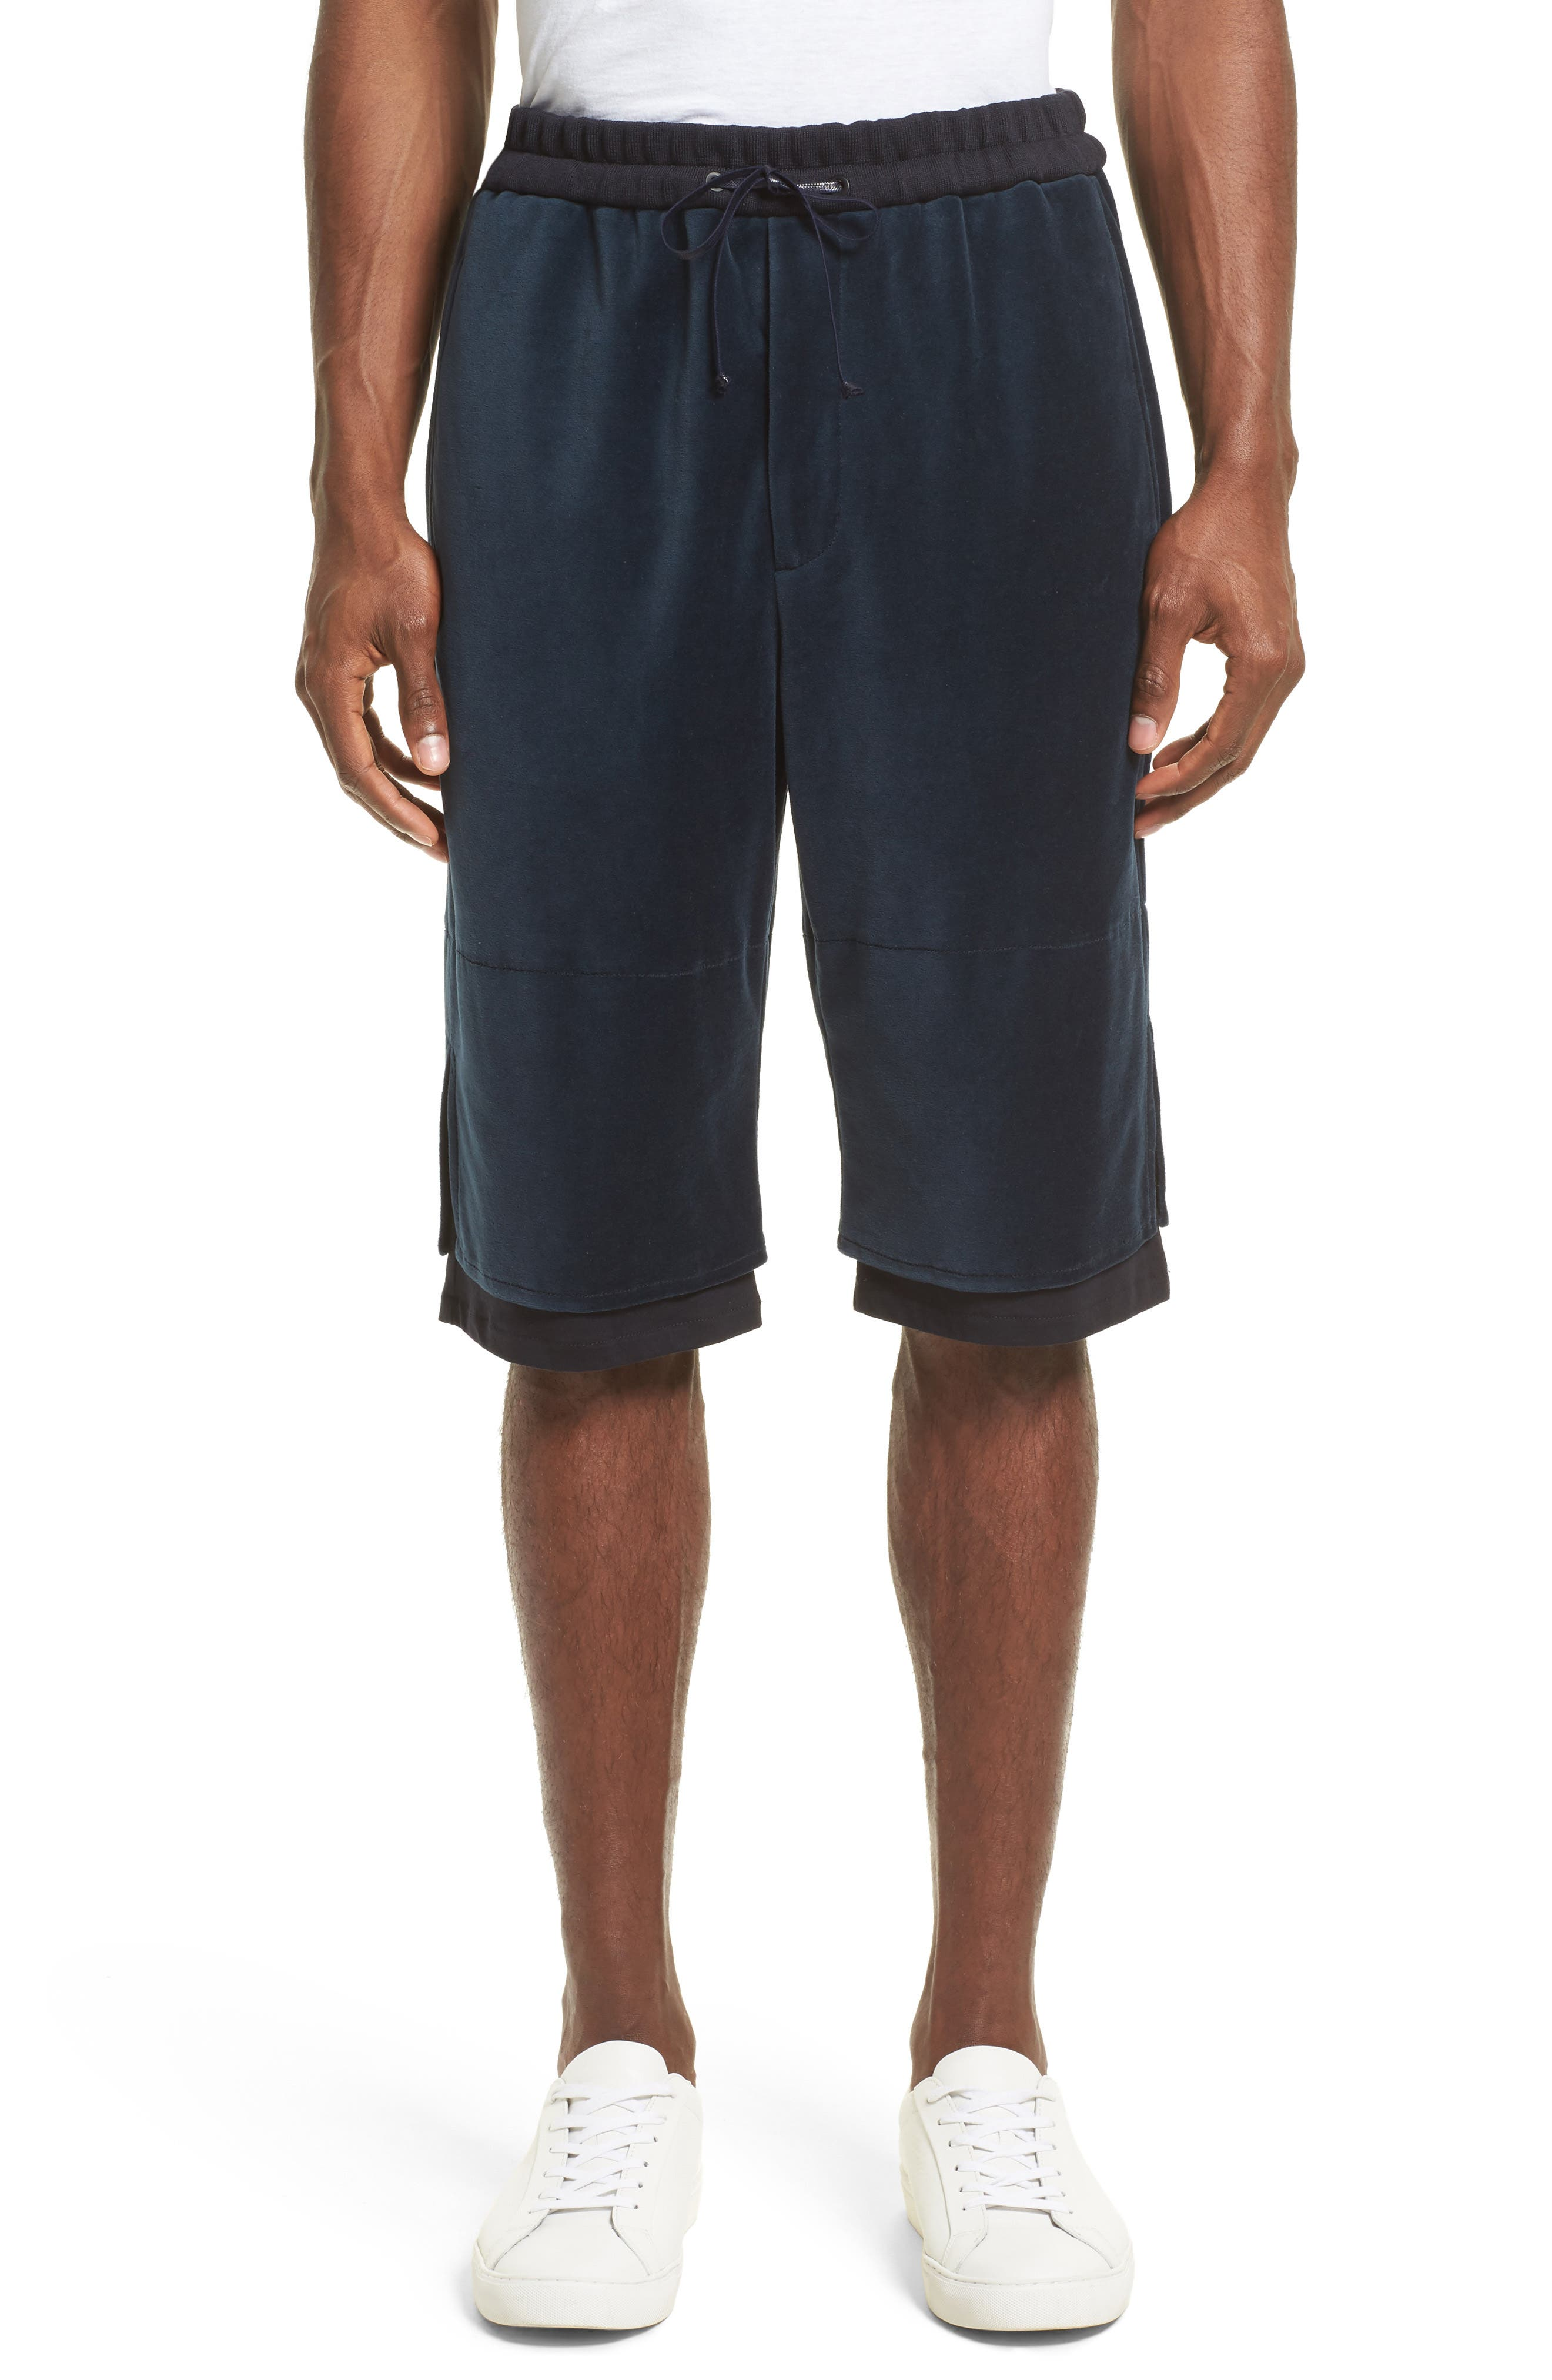 Alternate Image 1 Selected - 3.1 Phillip Lim Double Layer Shorts